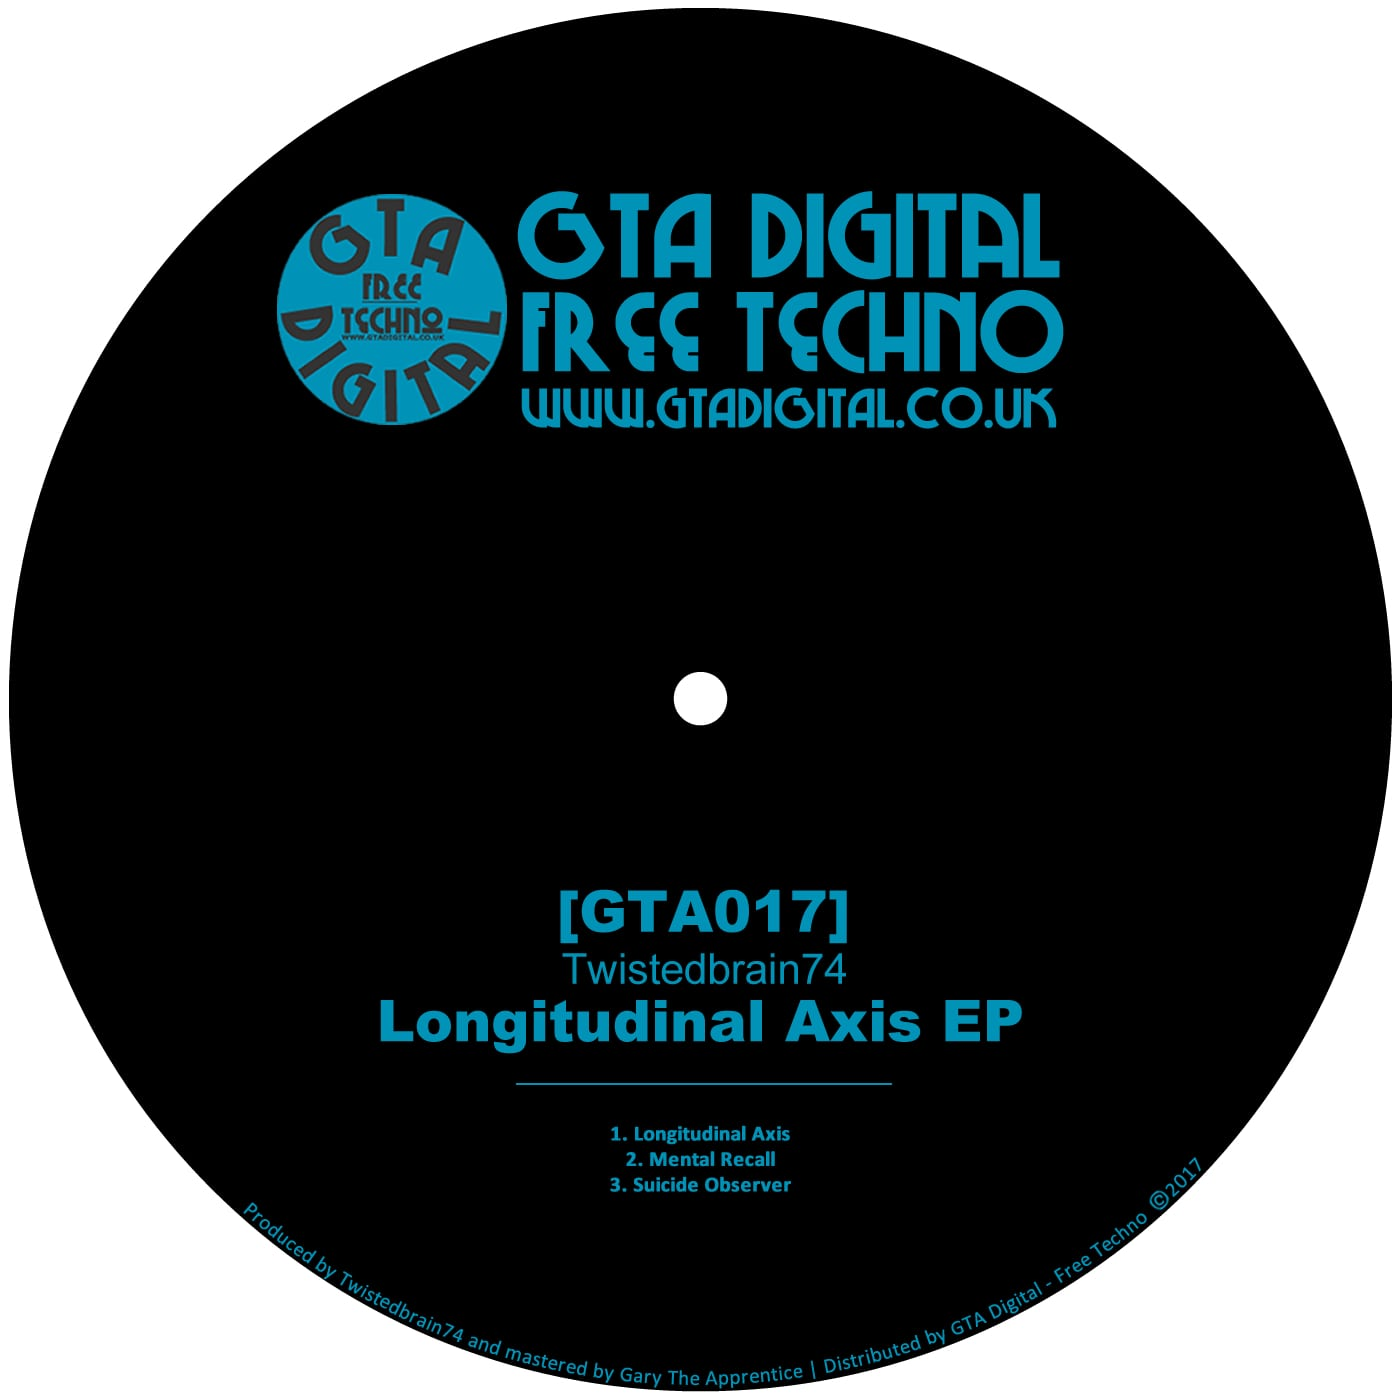 Longitudinal Axis EP